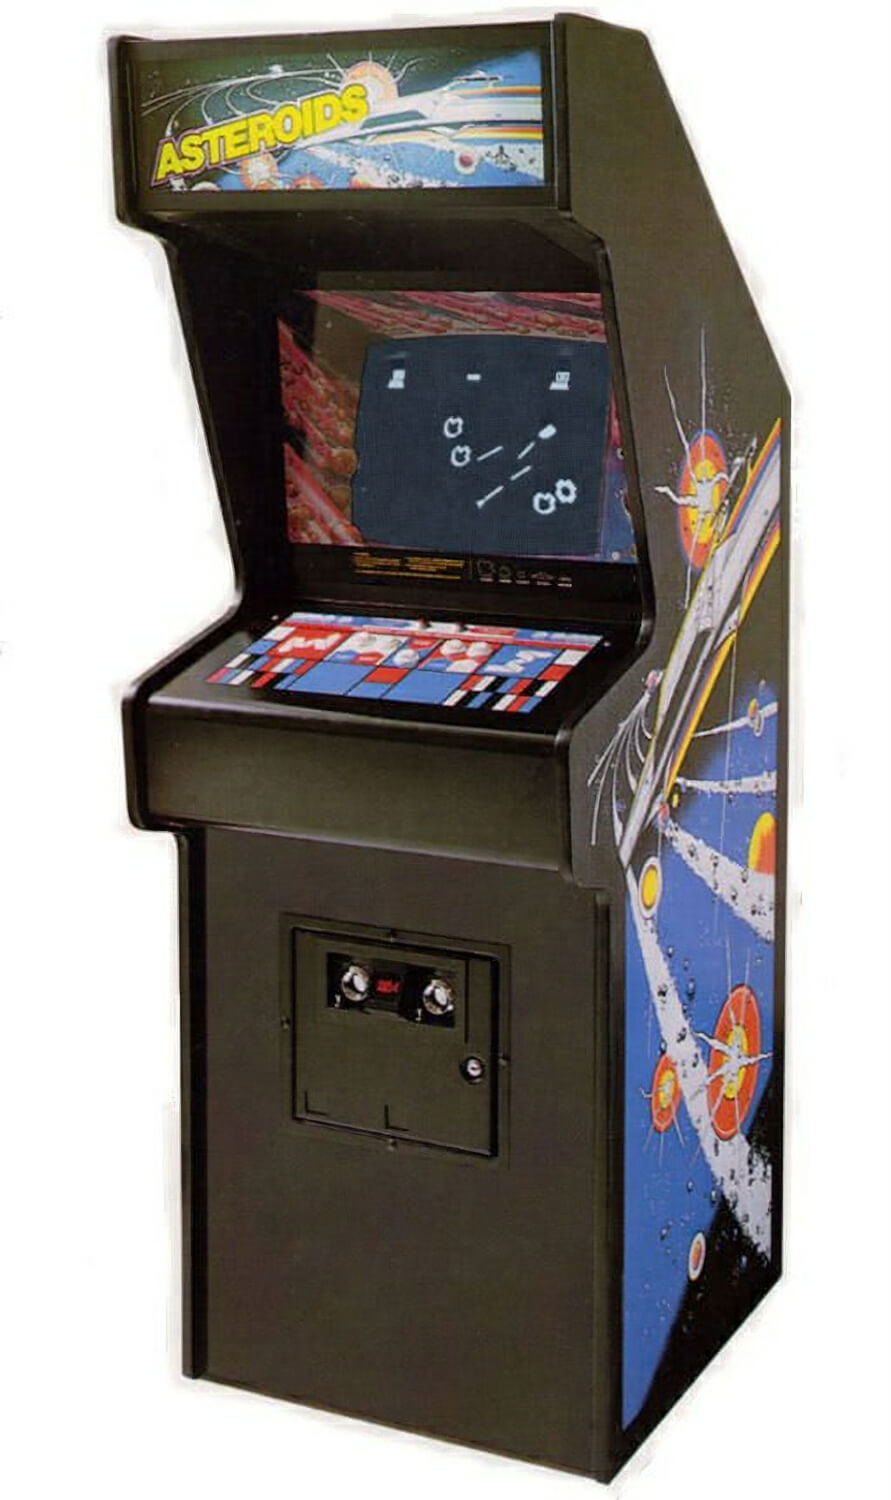 Atari Asteroids Arcade Machine Liberty Games